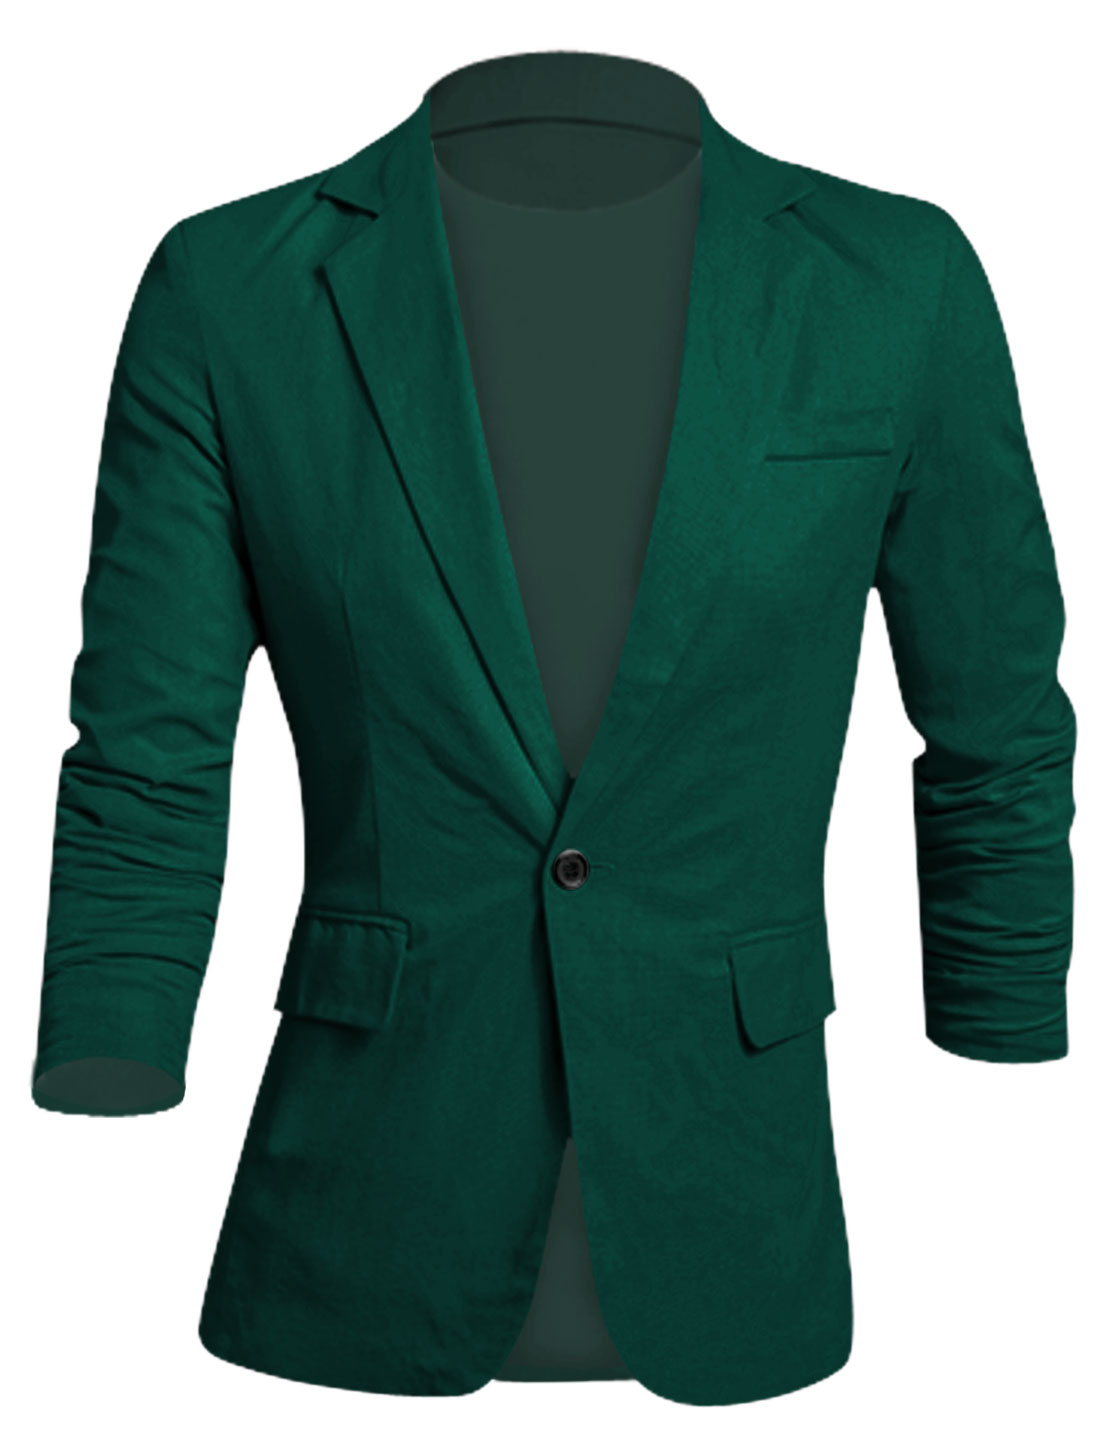 Men Notched Lapel Full Lined Button Decor Cuffs Slim Linen Blazer Dark Green M